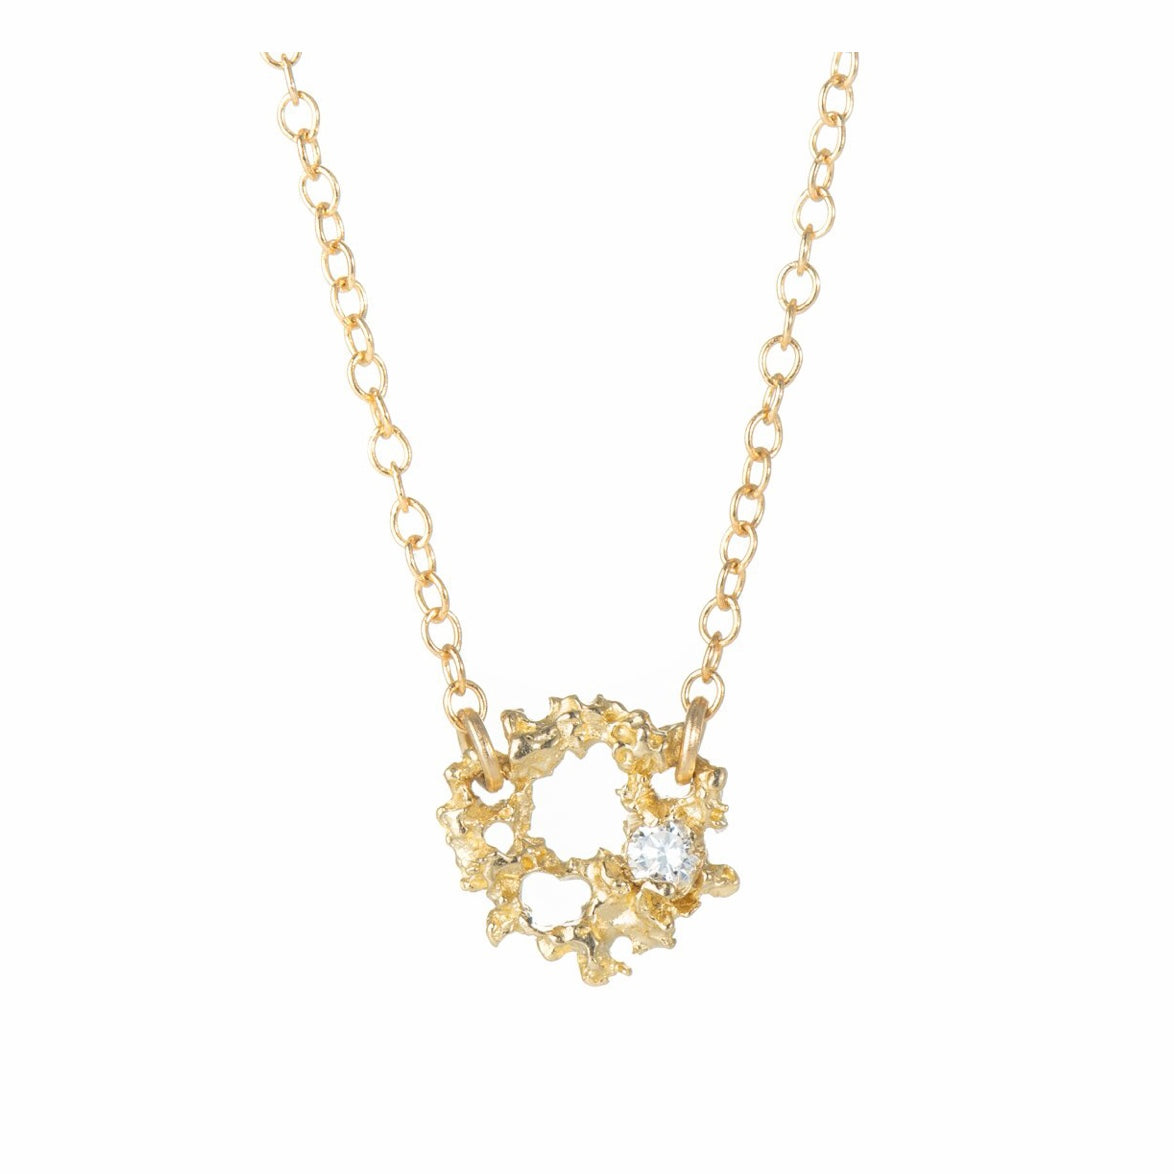 Supernova 14K Yellow Gold Necklace